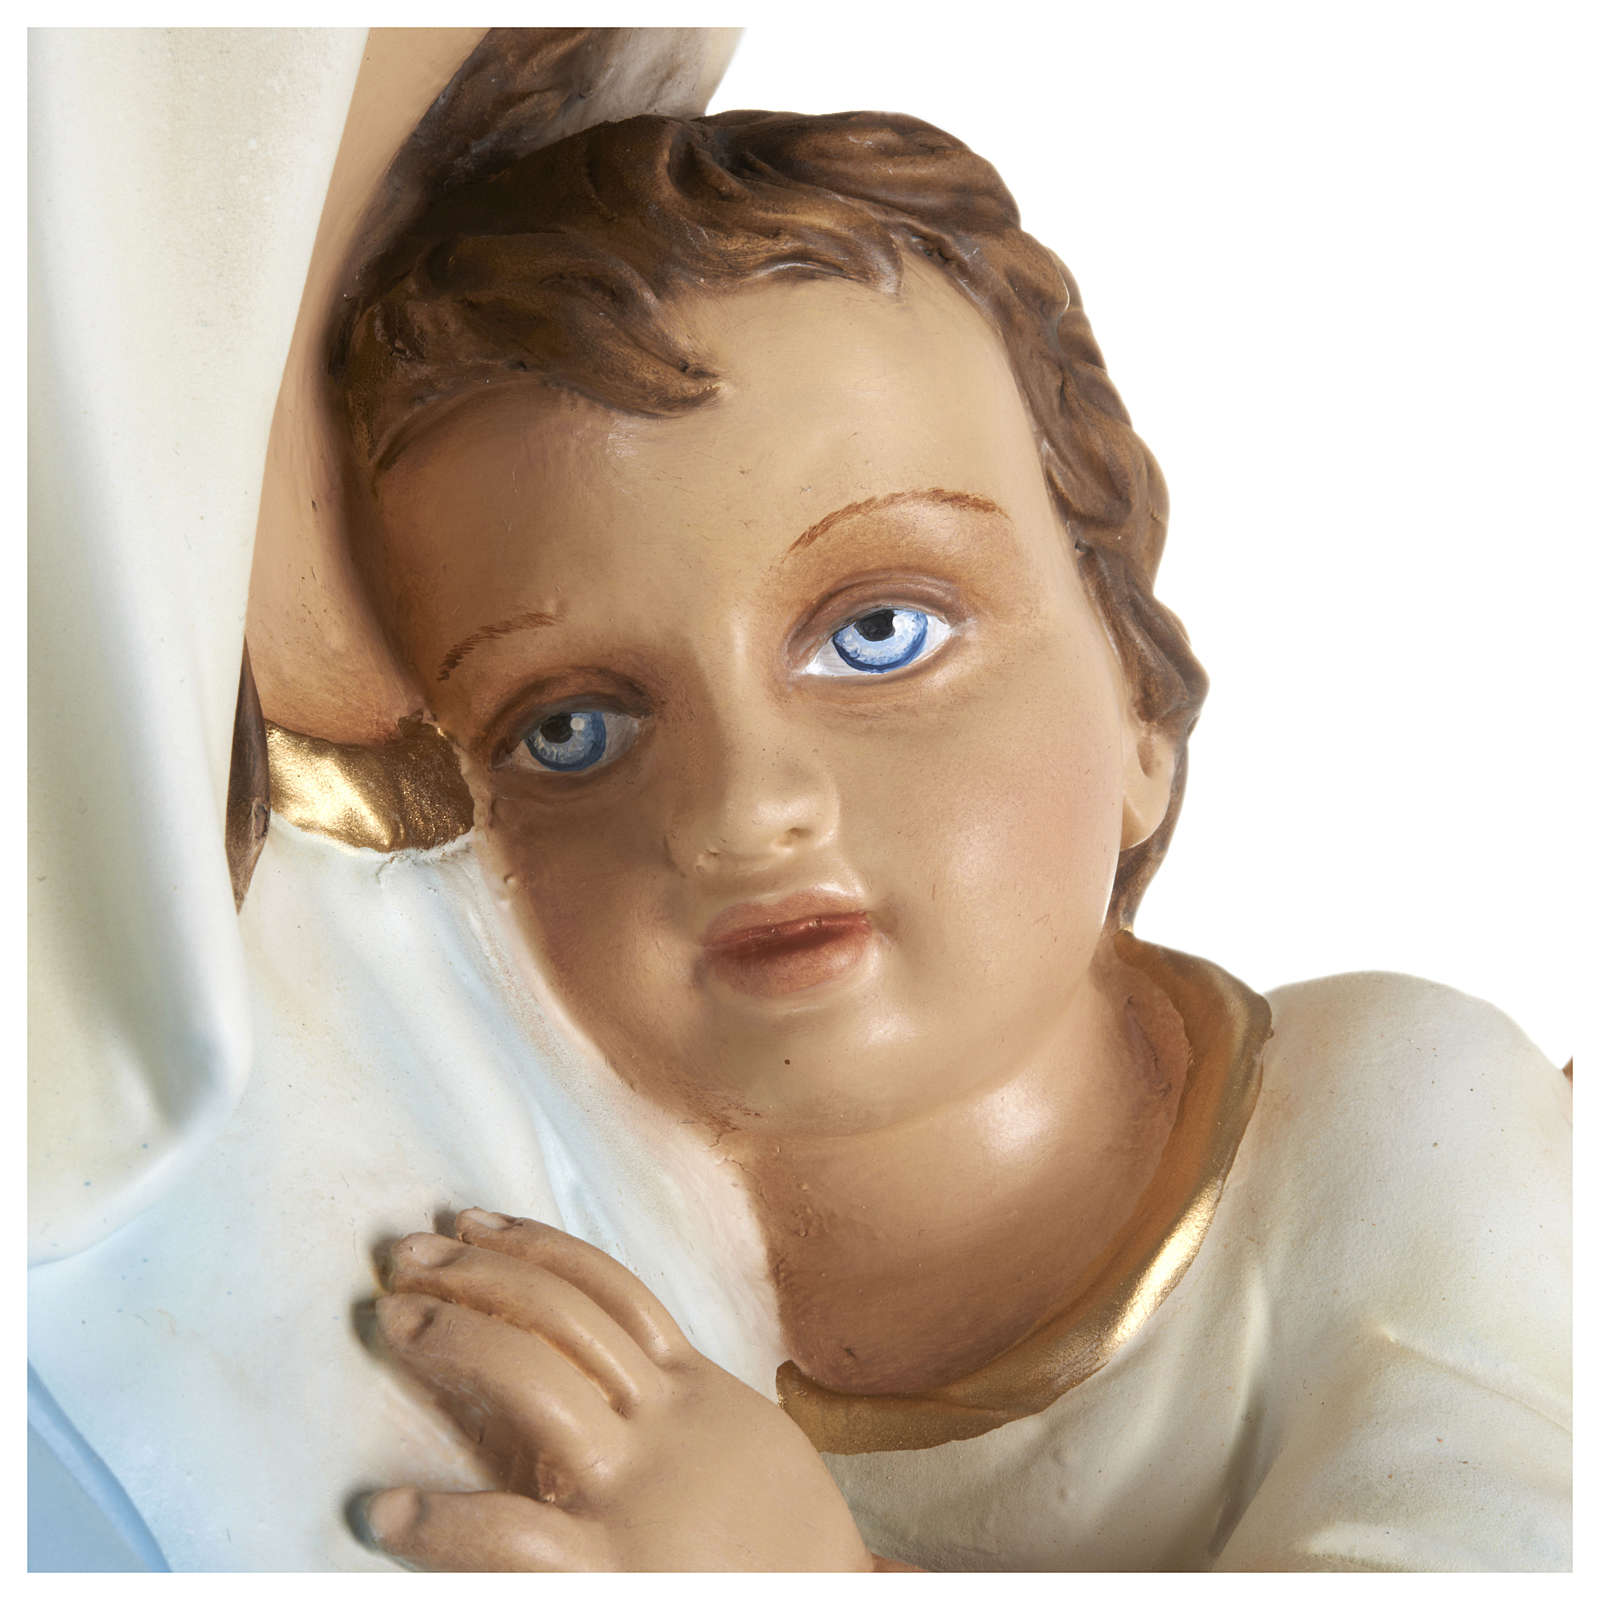 Statue of the Virgin Mary holding Baby Jesus in fibreglass 80 cm for EXTERNAL USE 4